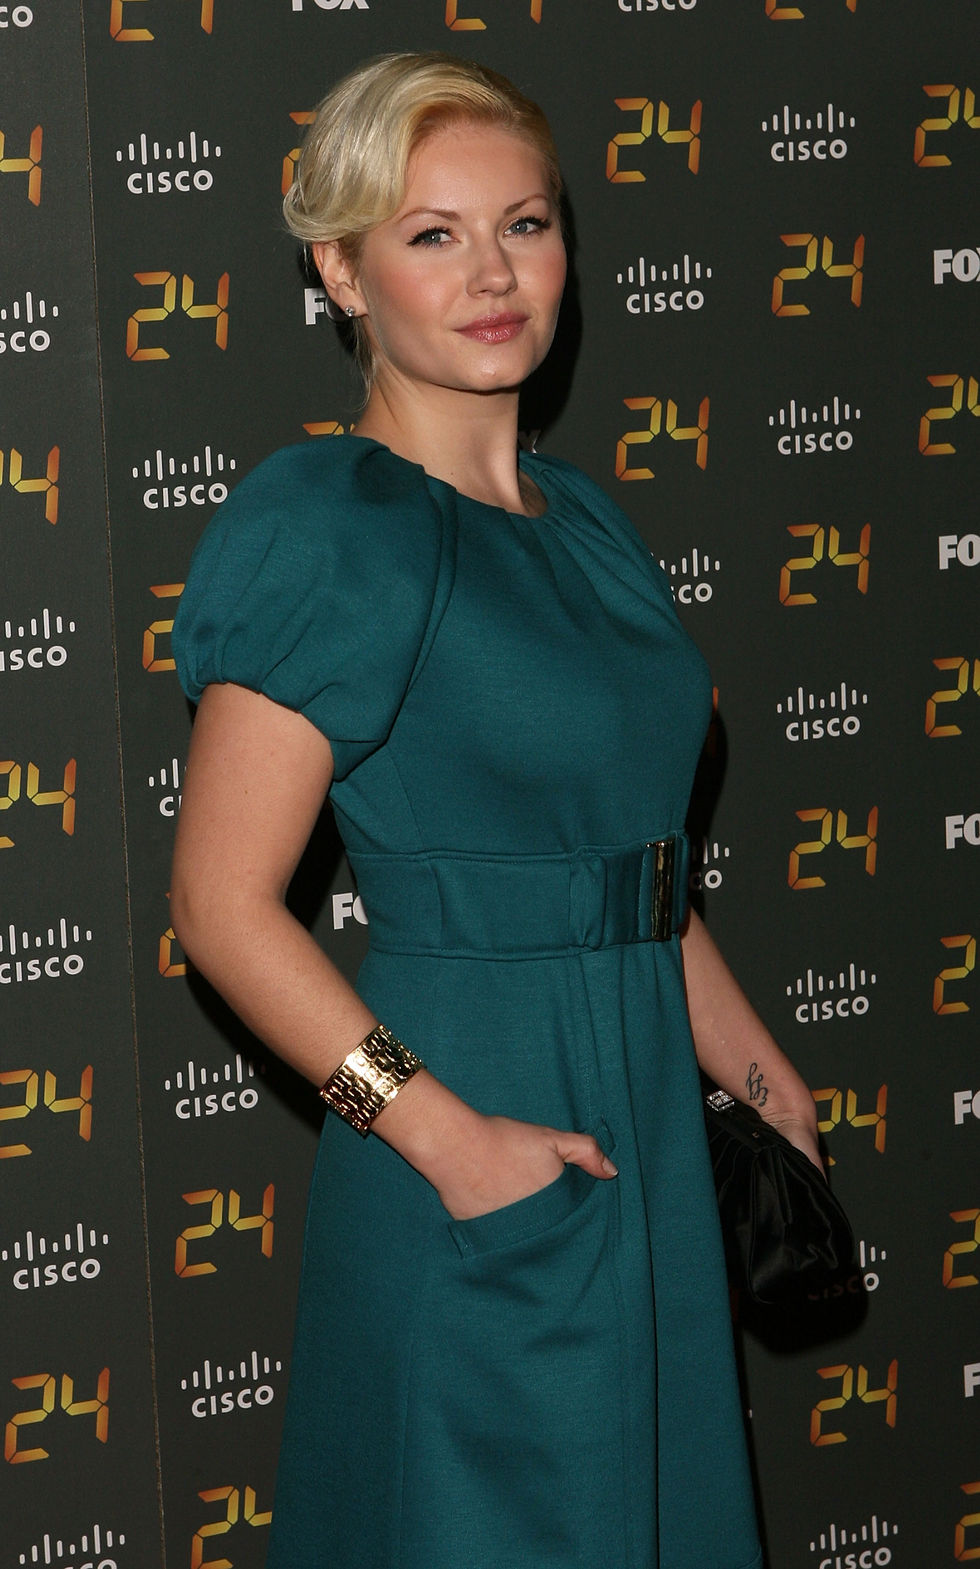 elisha-cuthbert-24-150th-episode-and-season-7-premiere-party-01